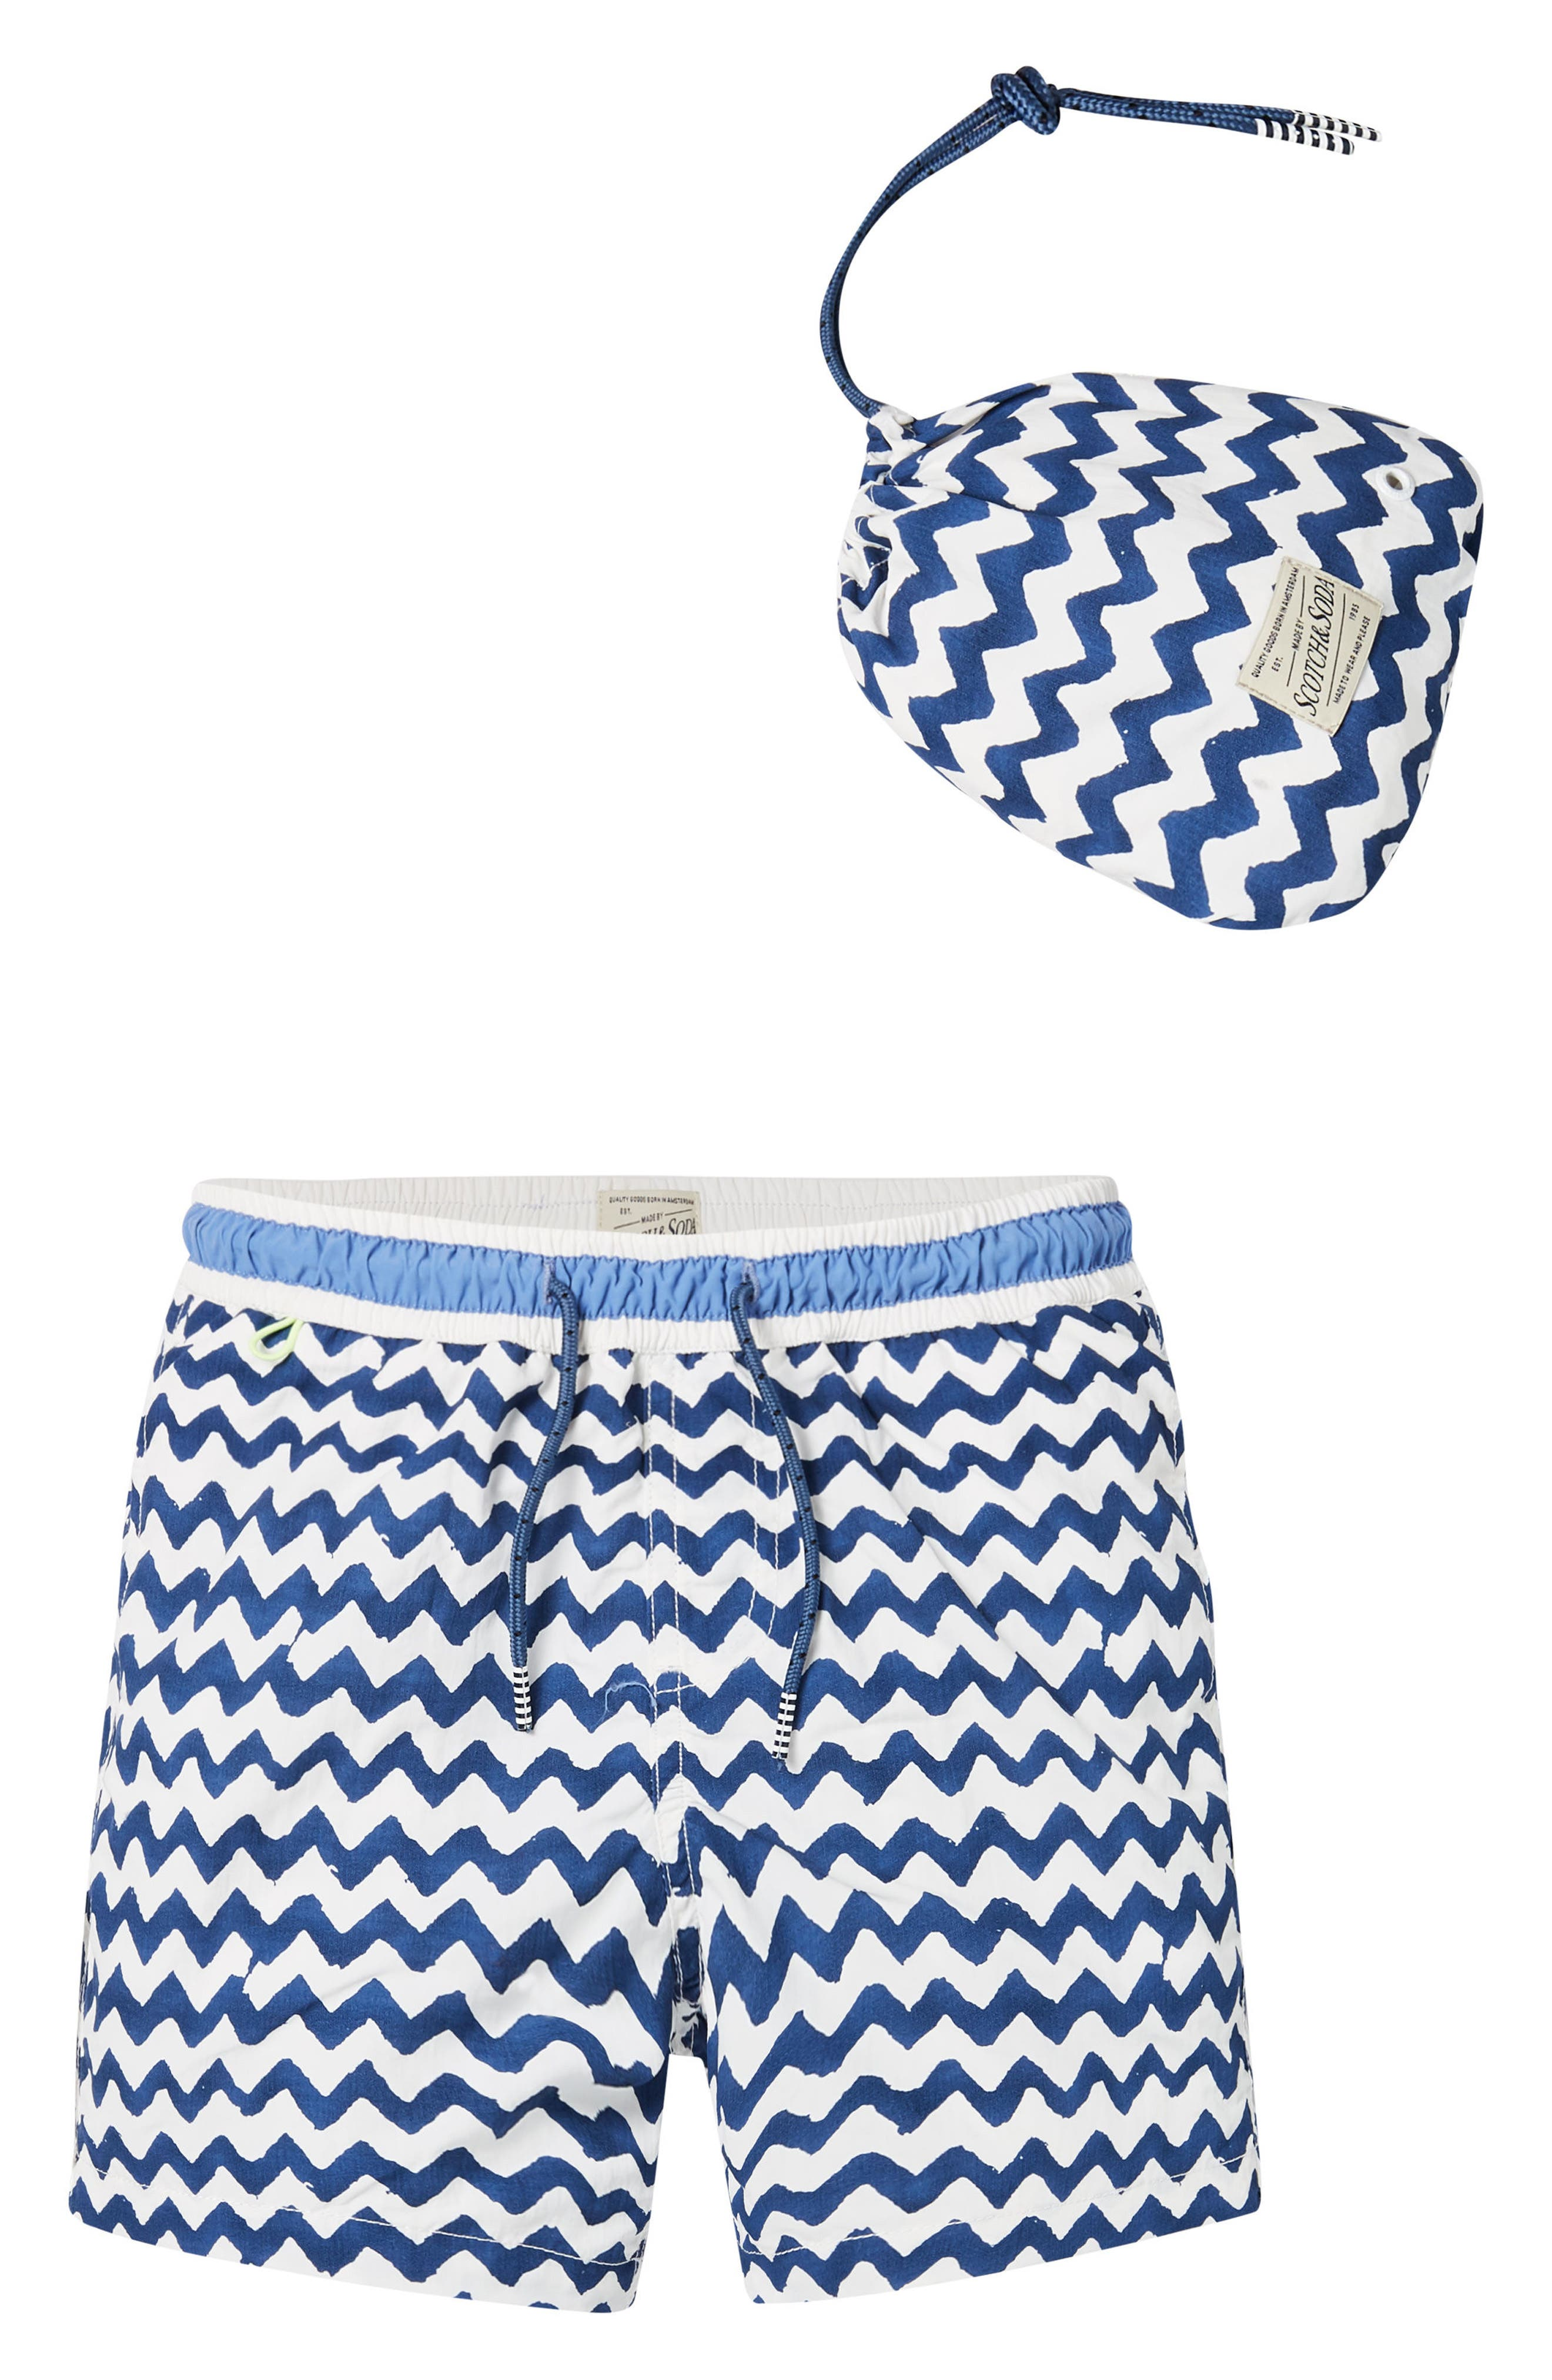 Allover Print Swim Trunks,                             Main thumbnail 1, color,                             400